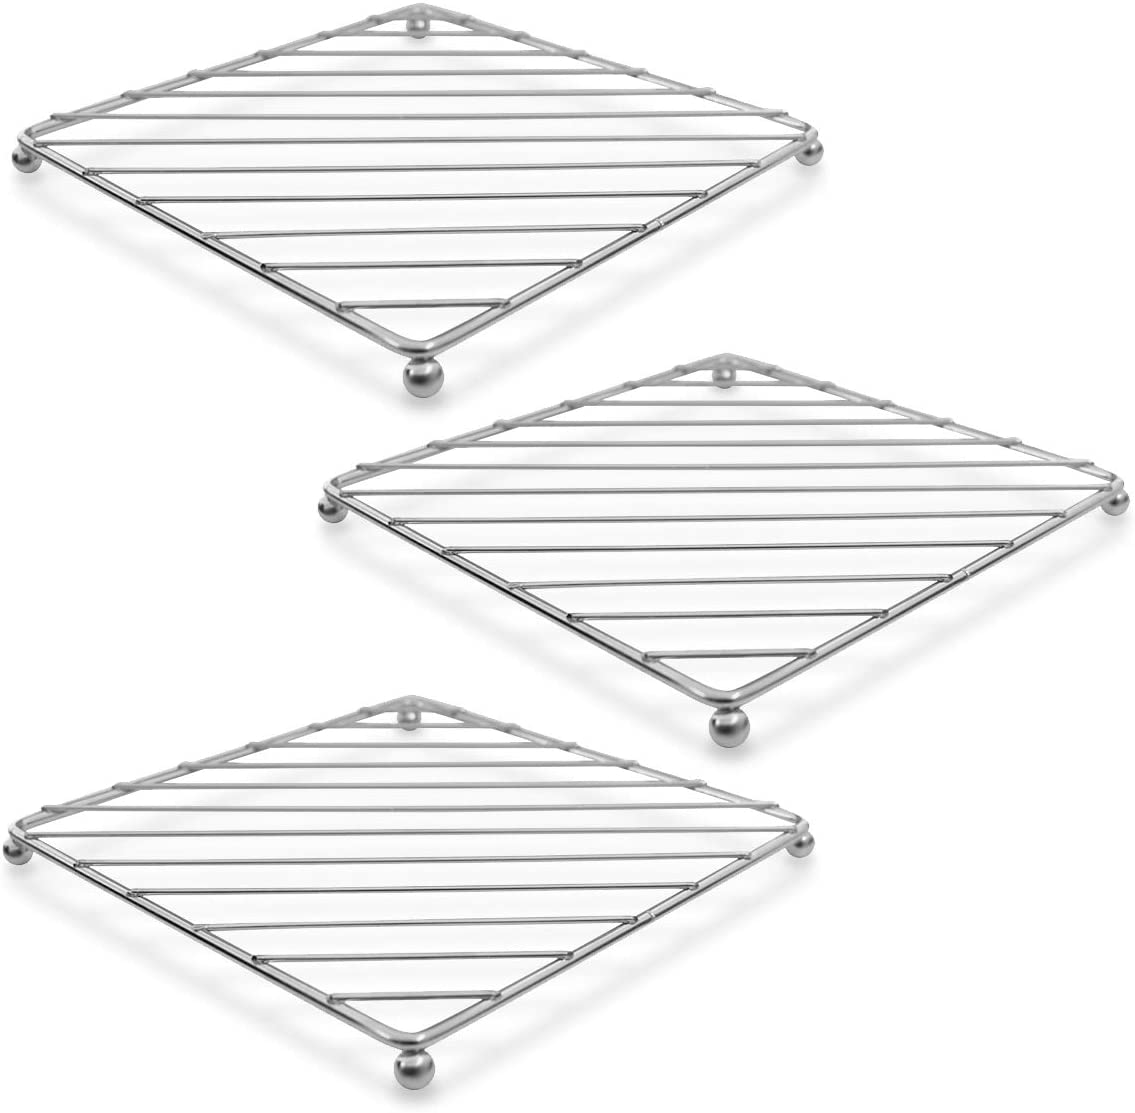 """LEEDA 3 Set Wire lron Square Pot Stand Trivet, 7?"""" Metal Table Protector Casserole Holder, Chrome Plated Trivets for Kitchen Dining Table, Serving Hot Dish, Pot, Pans, Teapot, Bowl"""